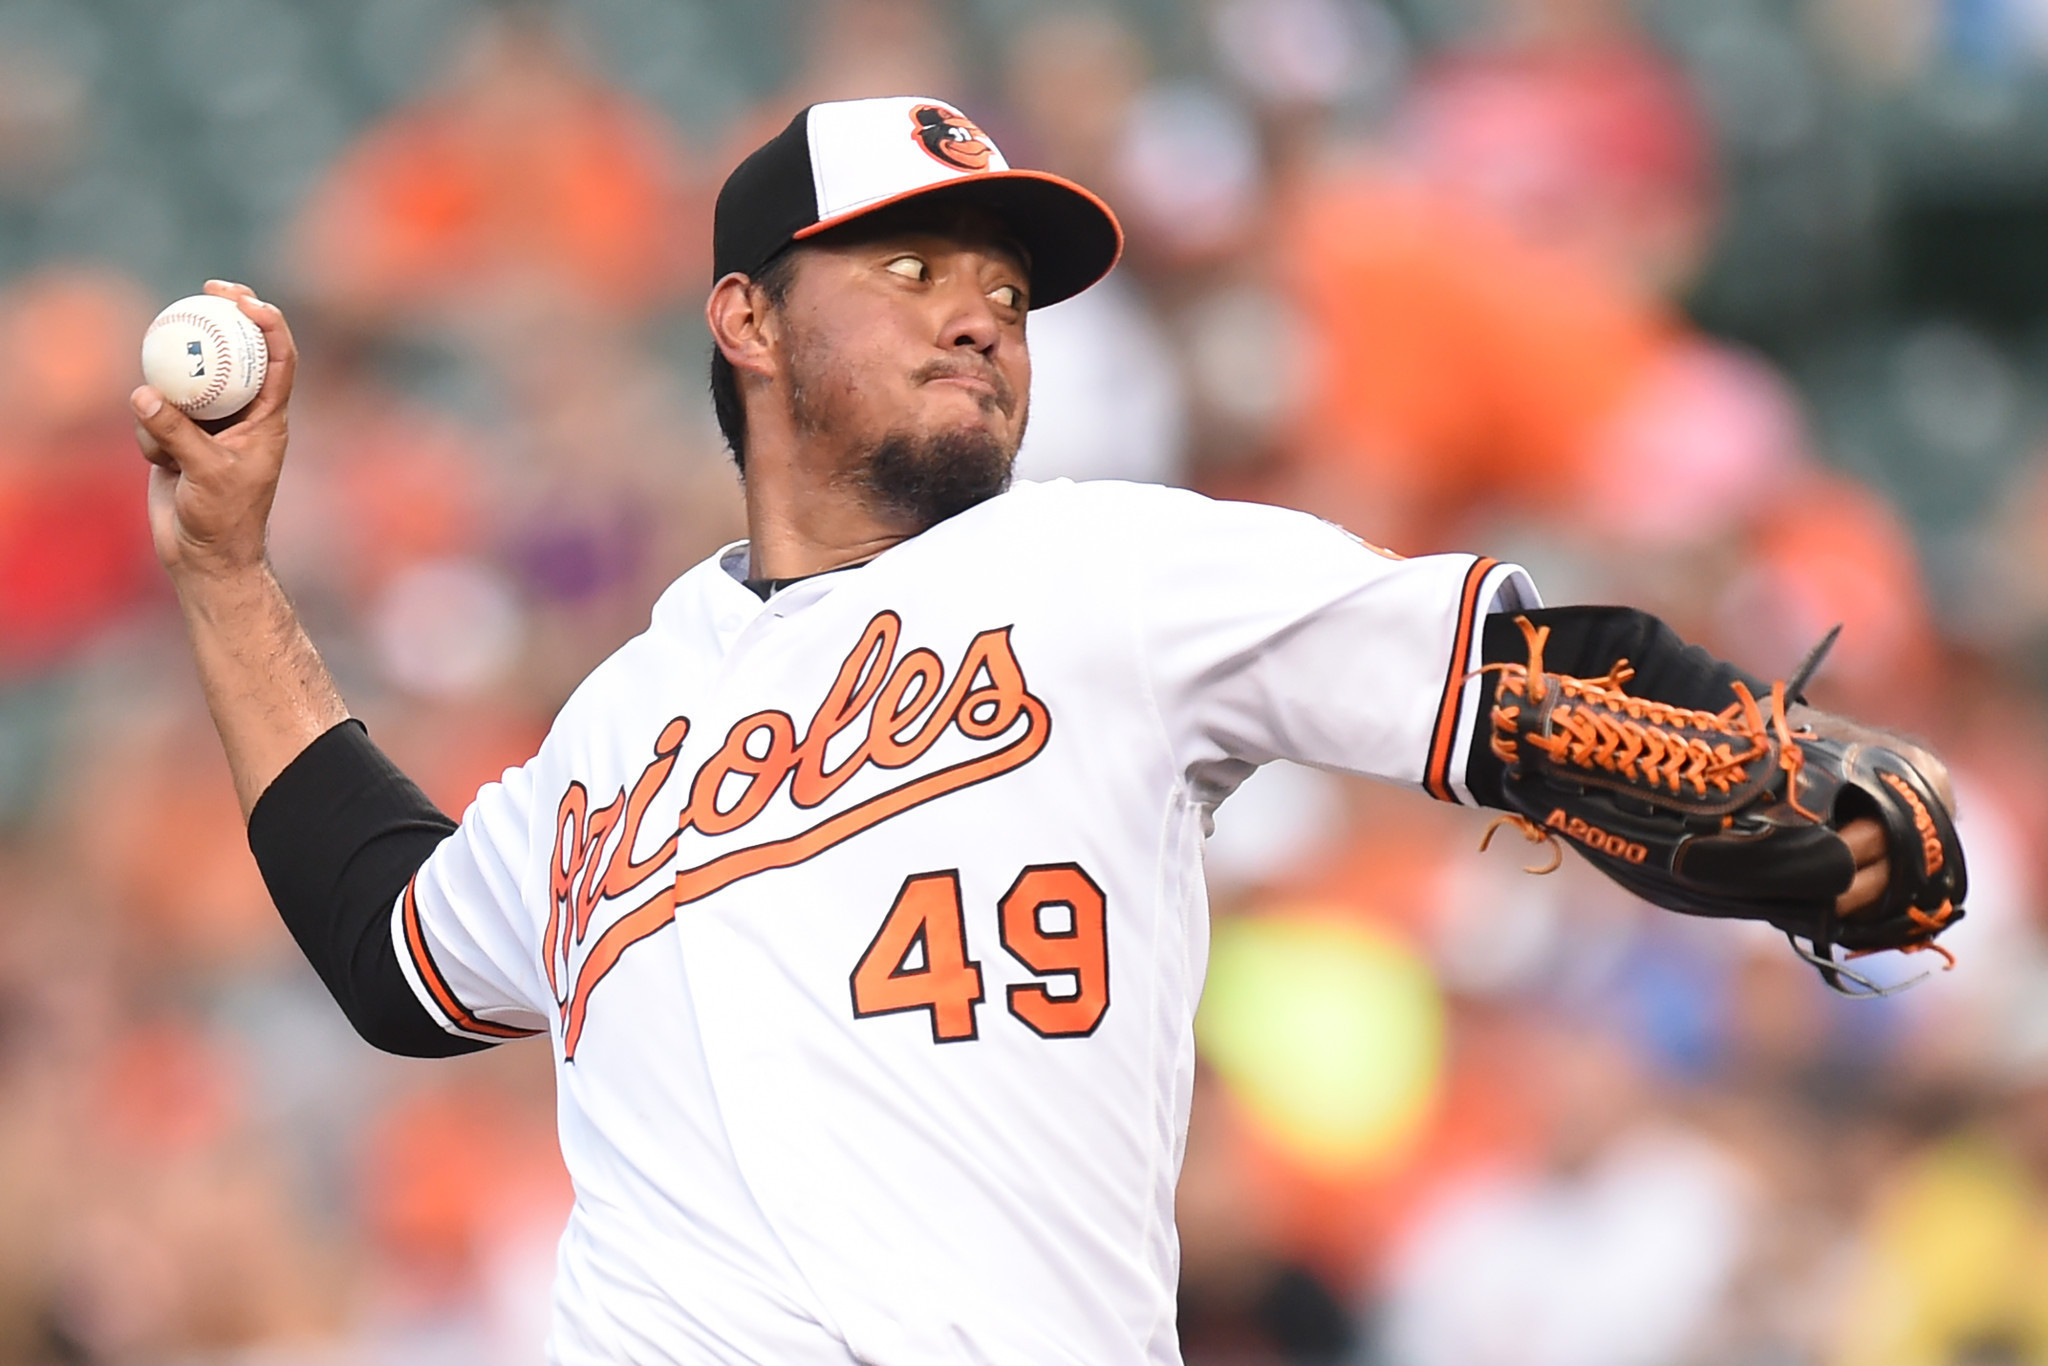 Bal-orioles-on-deck-what-to-watch-saturday-at-blue-jays-20160729